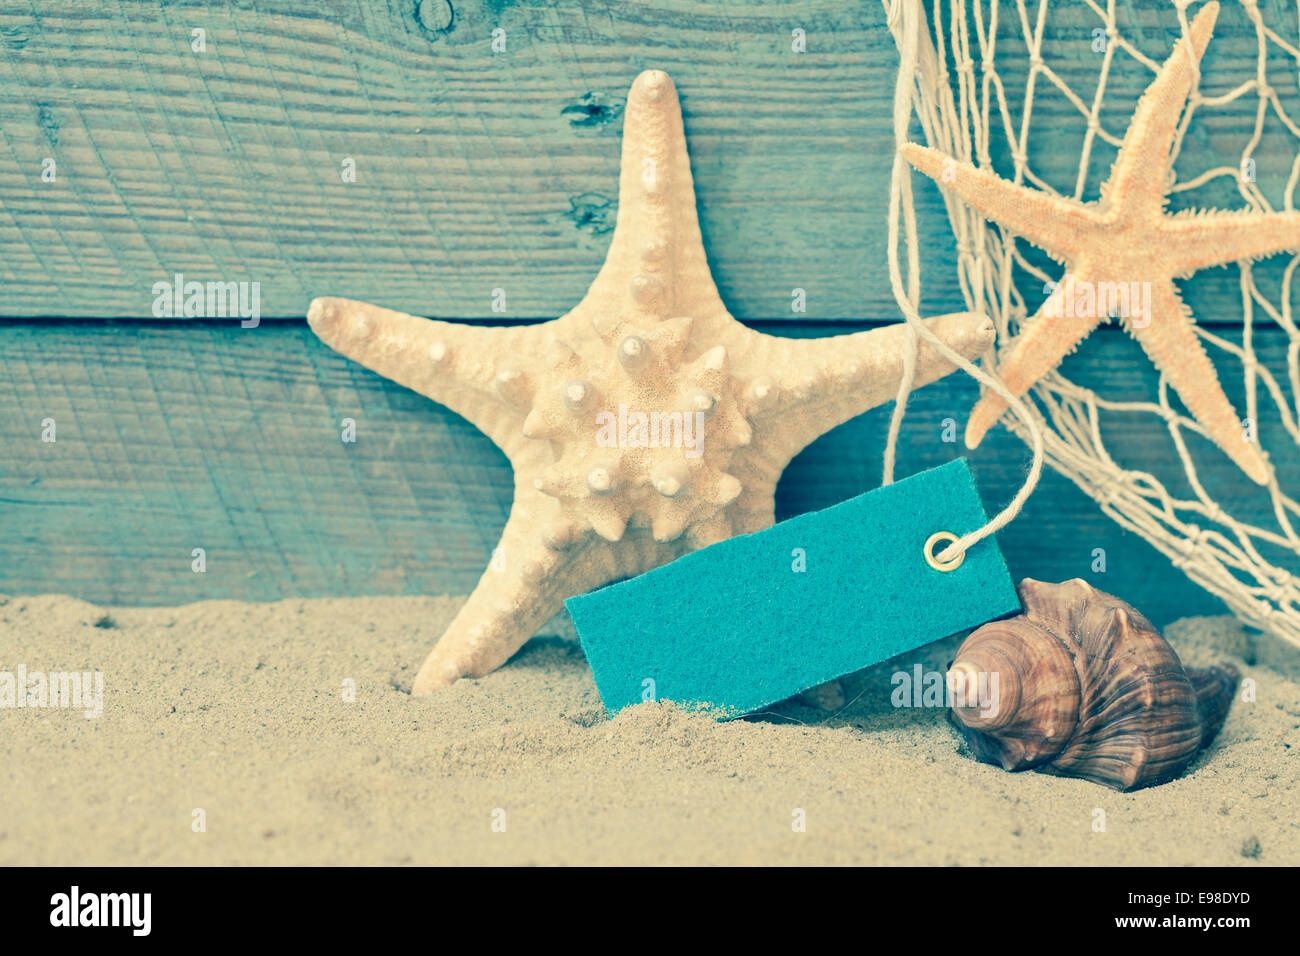 Toned Retro Nautical Background With Starfish And A Seashell On Beach Sand Against Rustic Blue Wooden Boards Blank Label